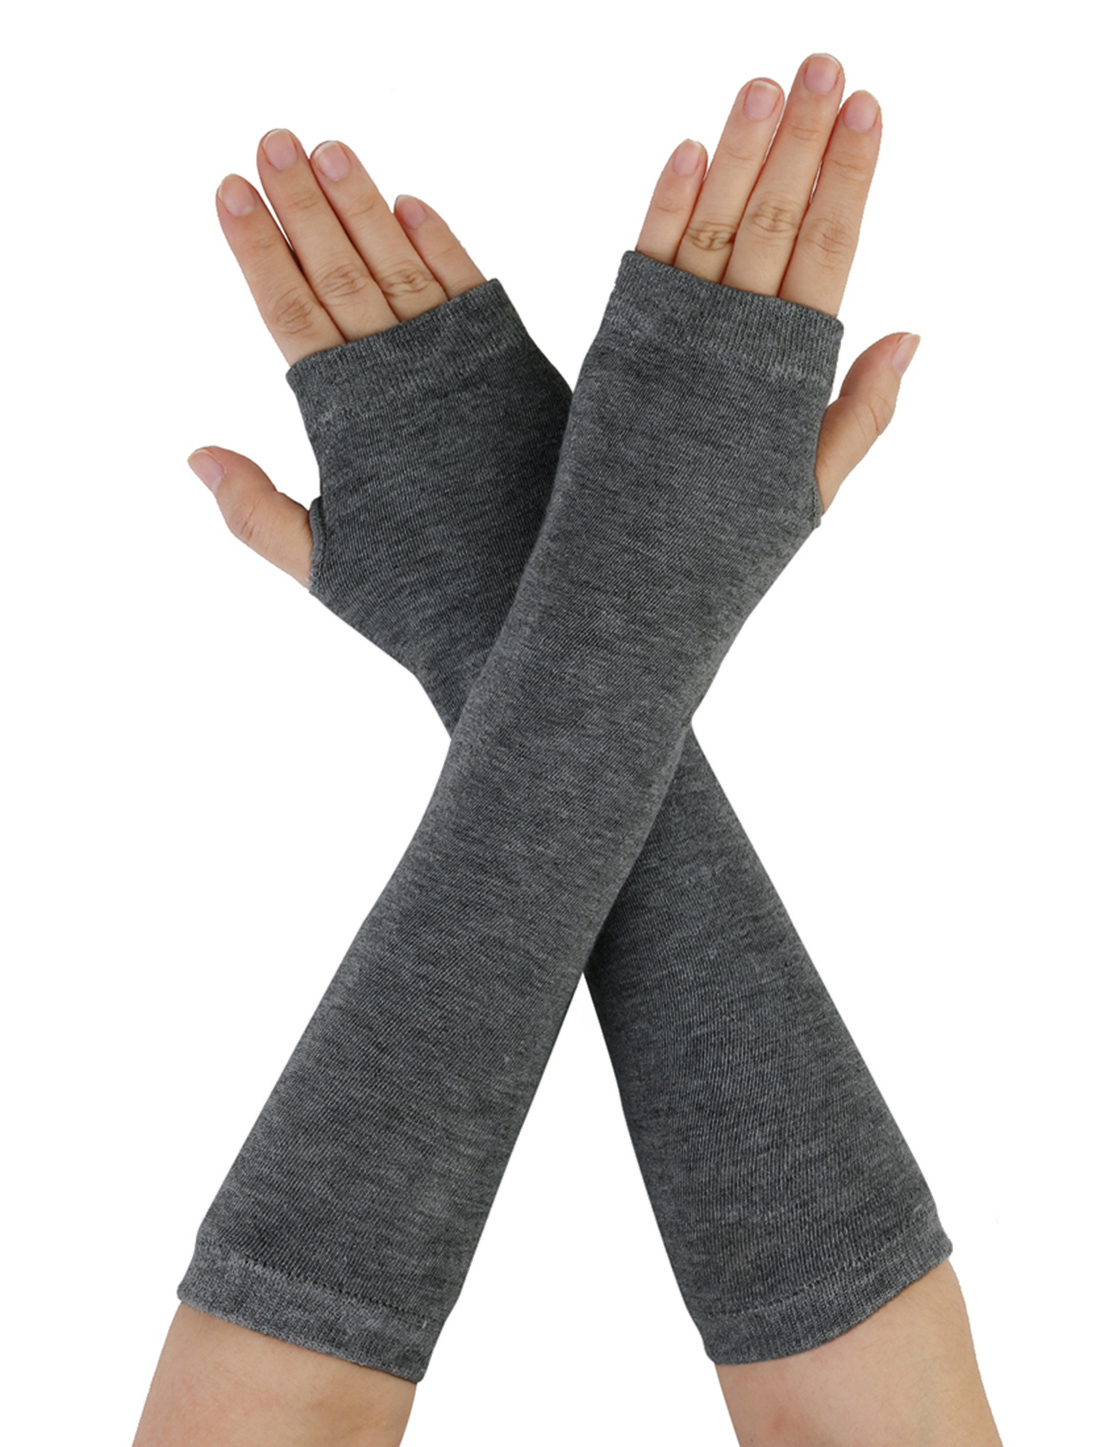 Unisex Elastic Fingerless Arm Warmers Gloves Dark Gray Pair